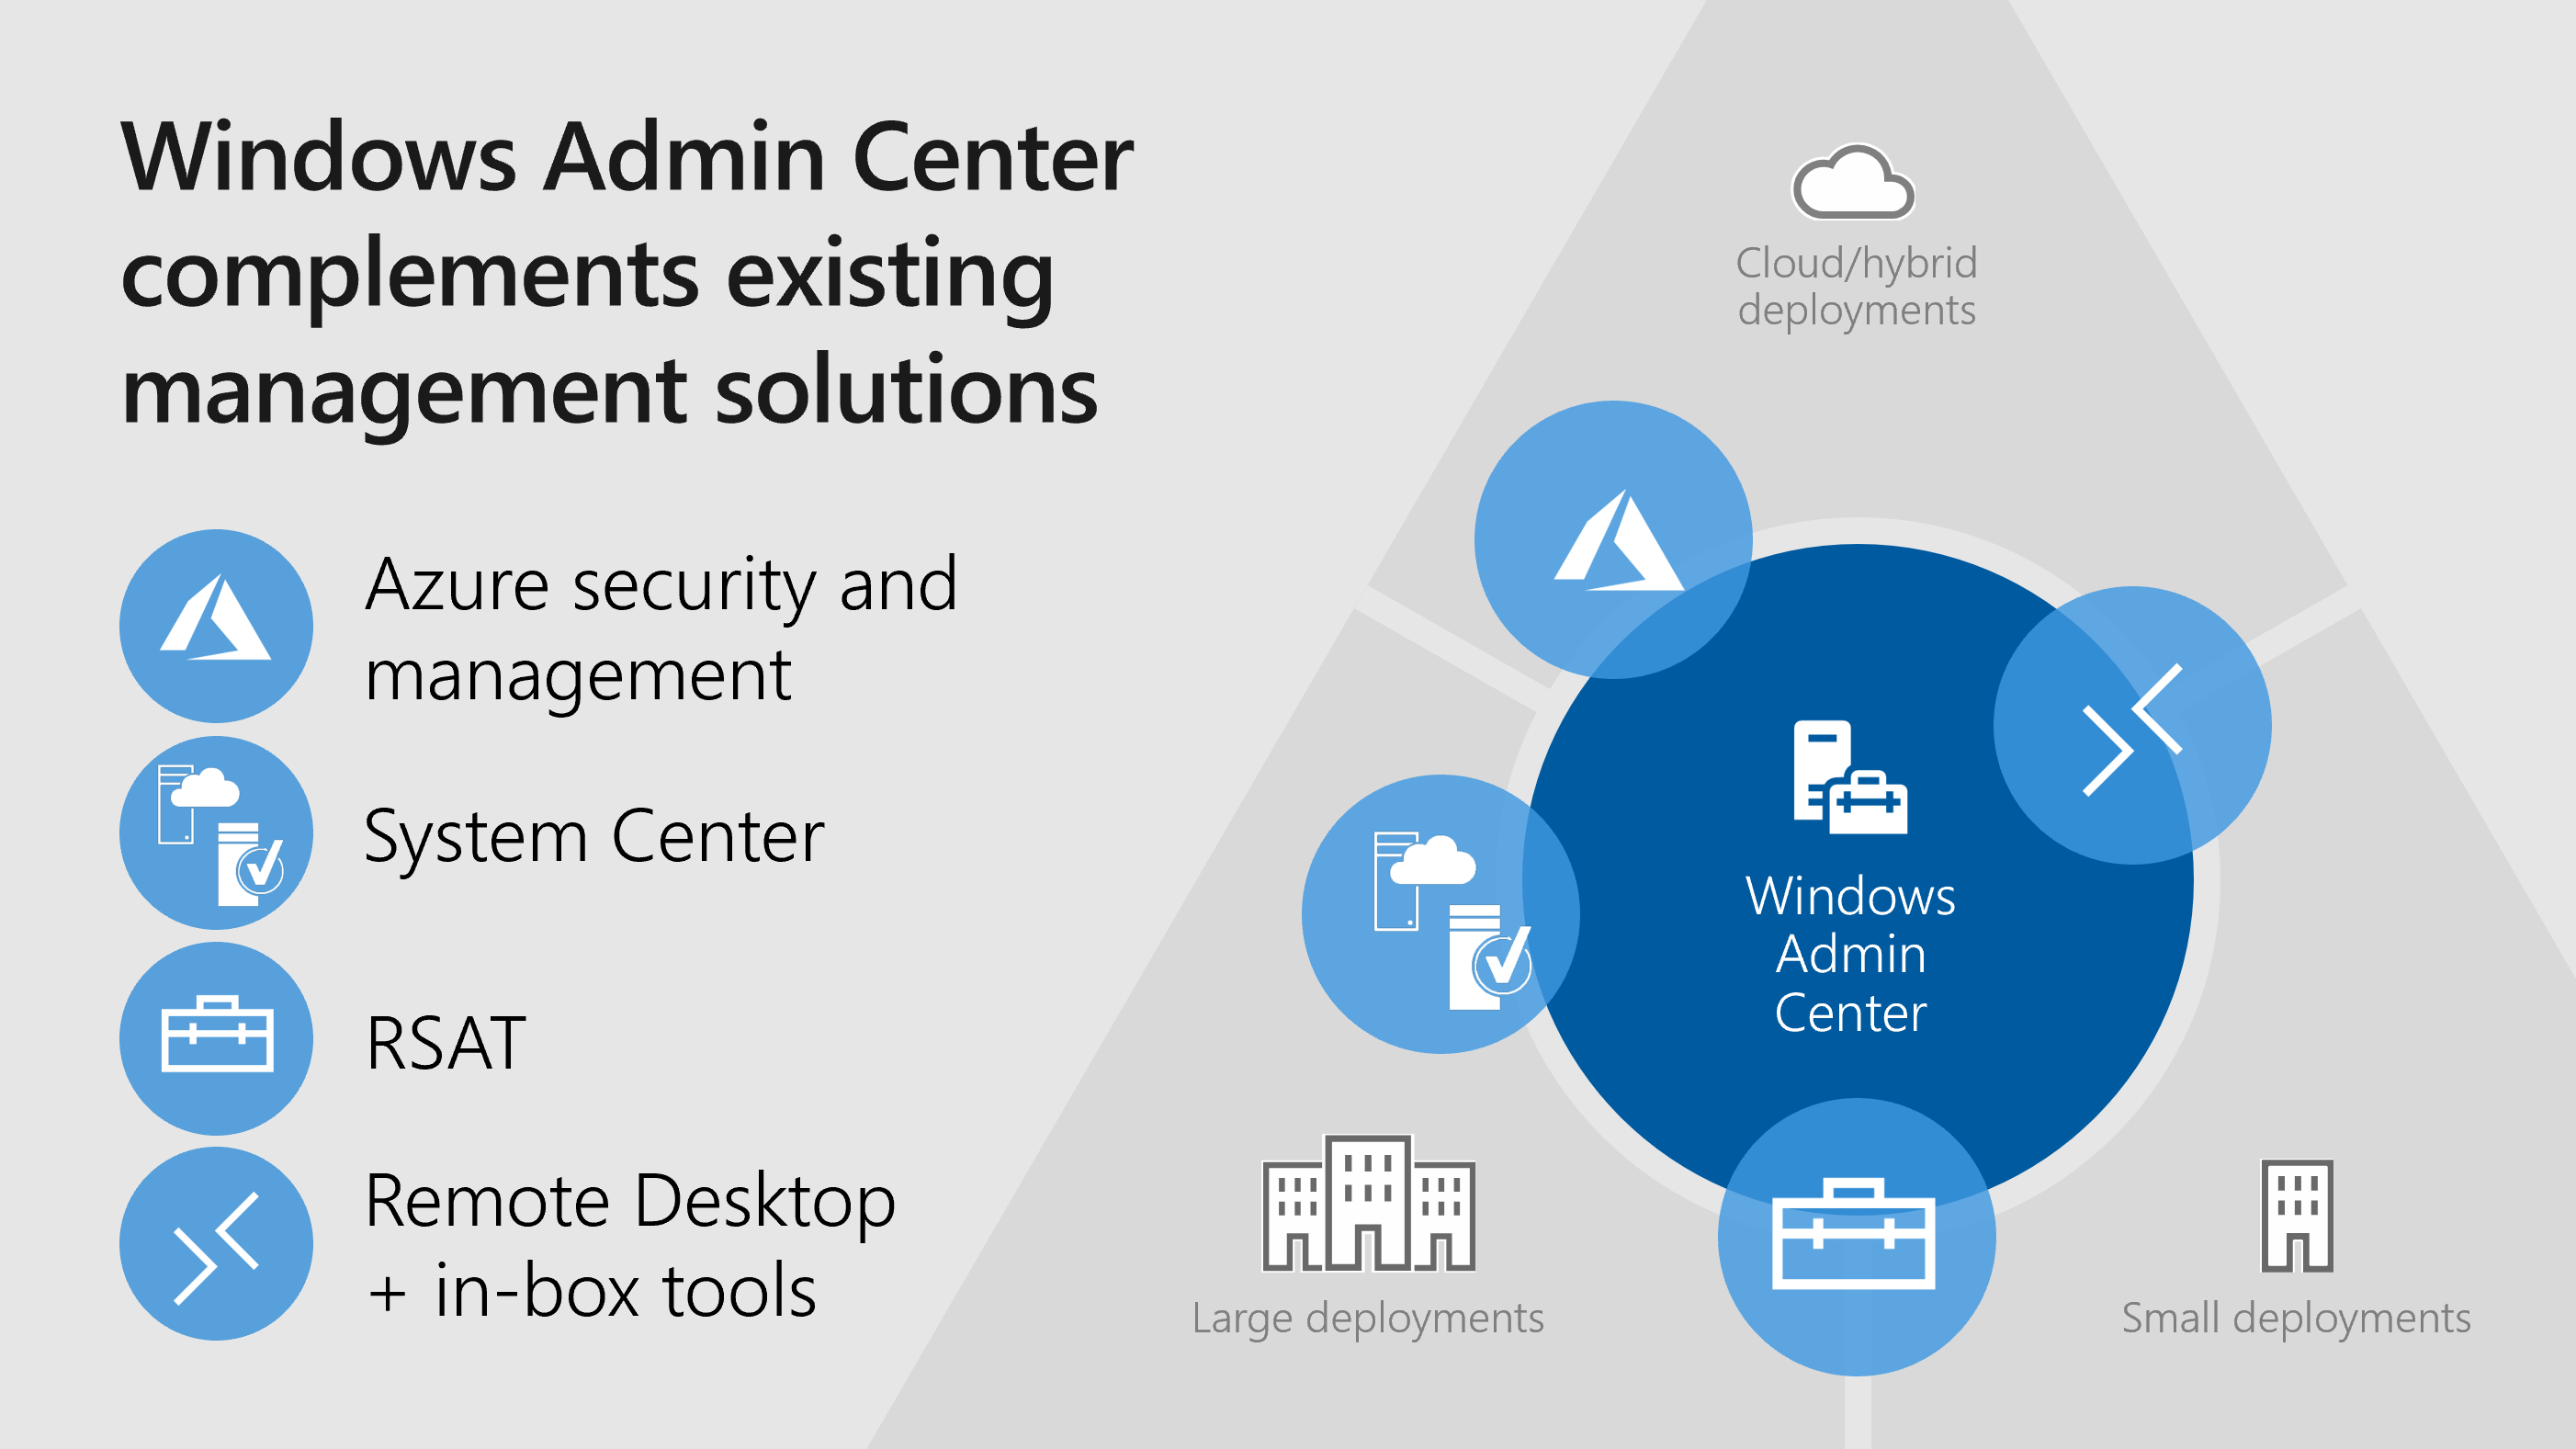 How does Windows Admin Center work?